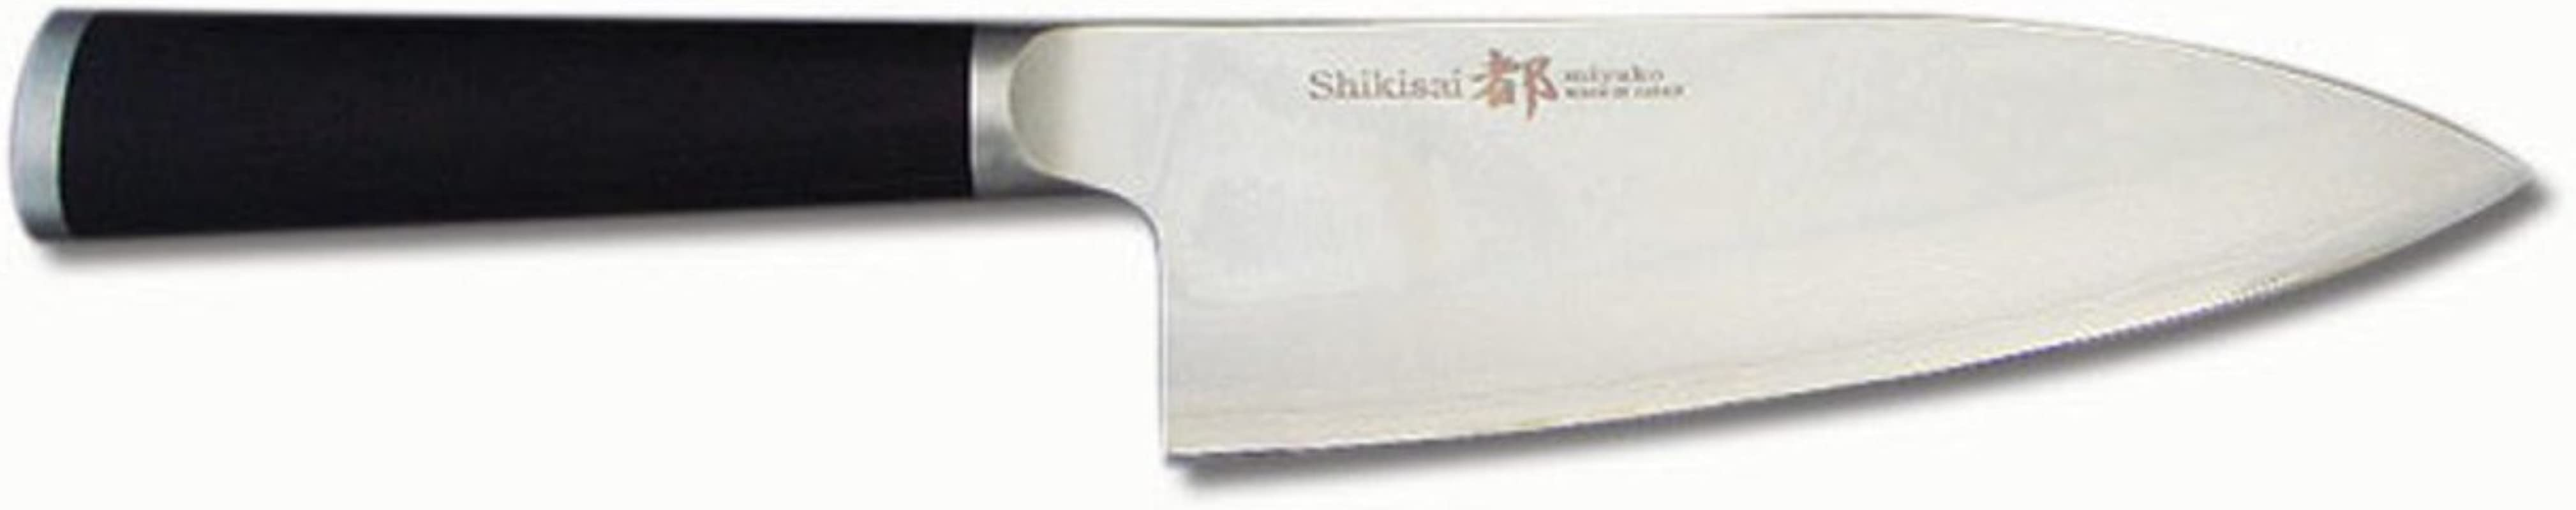 Miyako Japanese 33 Layers Damascus Steel Deba Knife 6 1 2 In With Wooden Handle Chefs Best And Favourite Knife